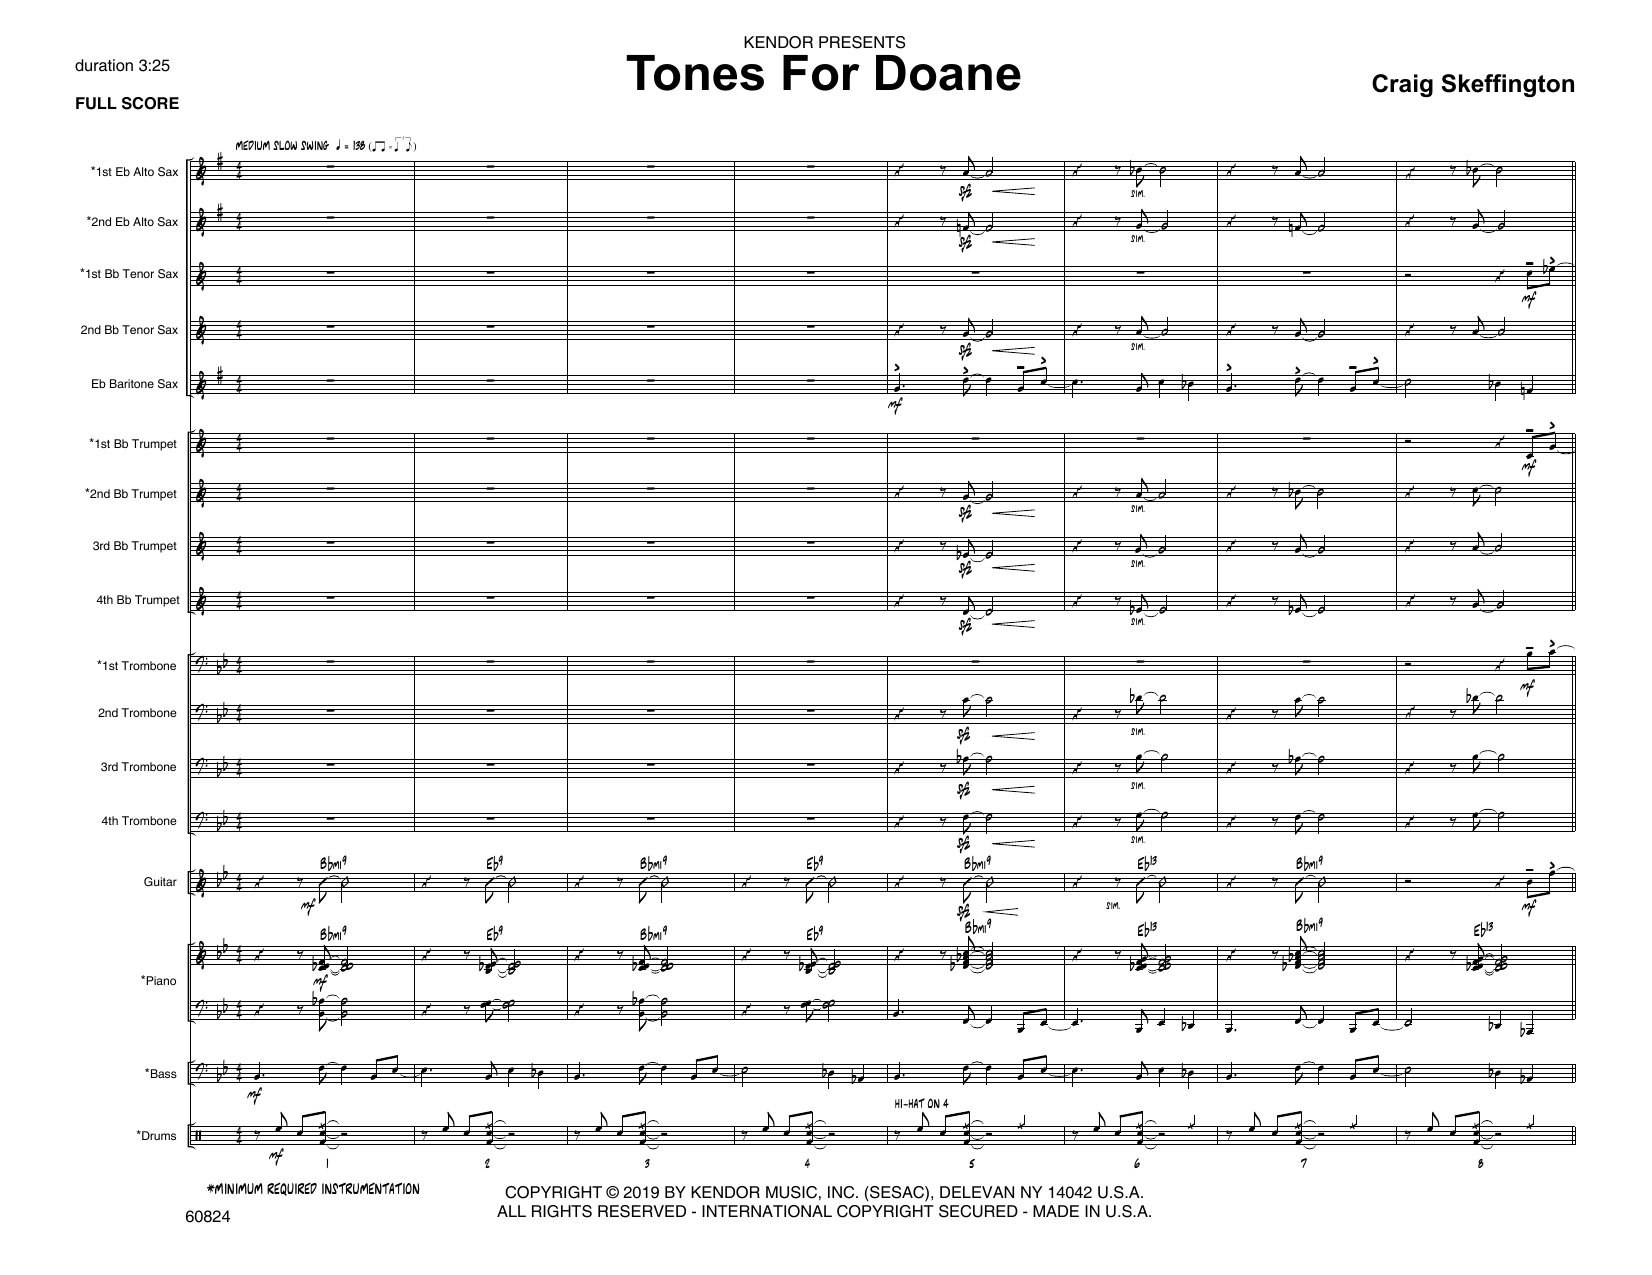 Craig Skeffington Tones For Doane - Full Score sheet music notes and chords. Download Printable PDF.